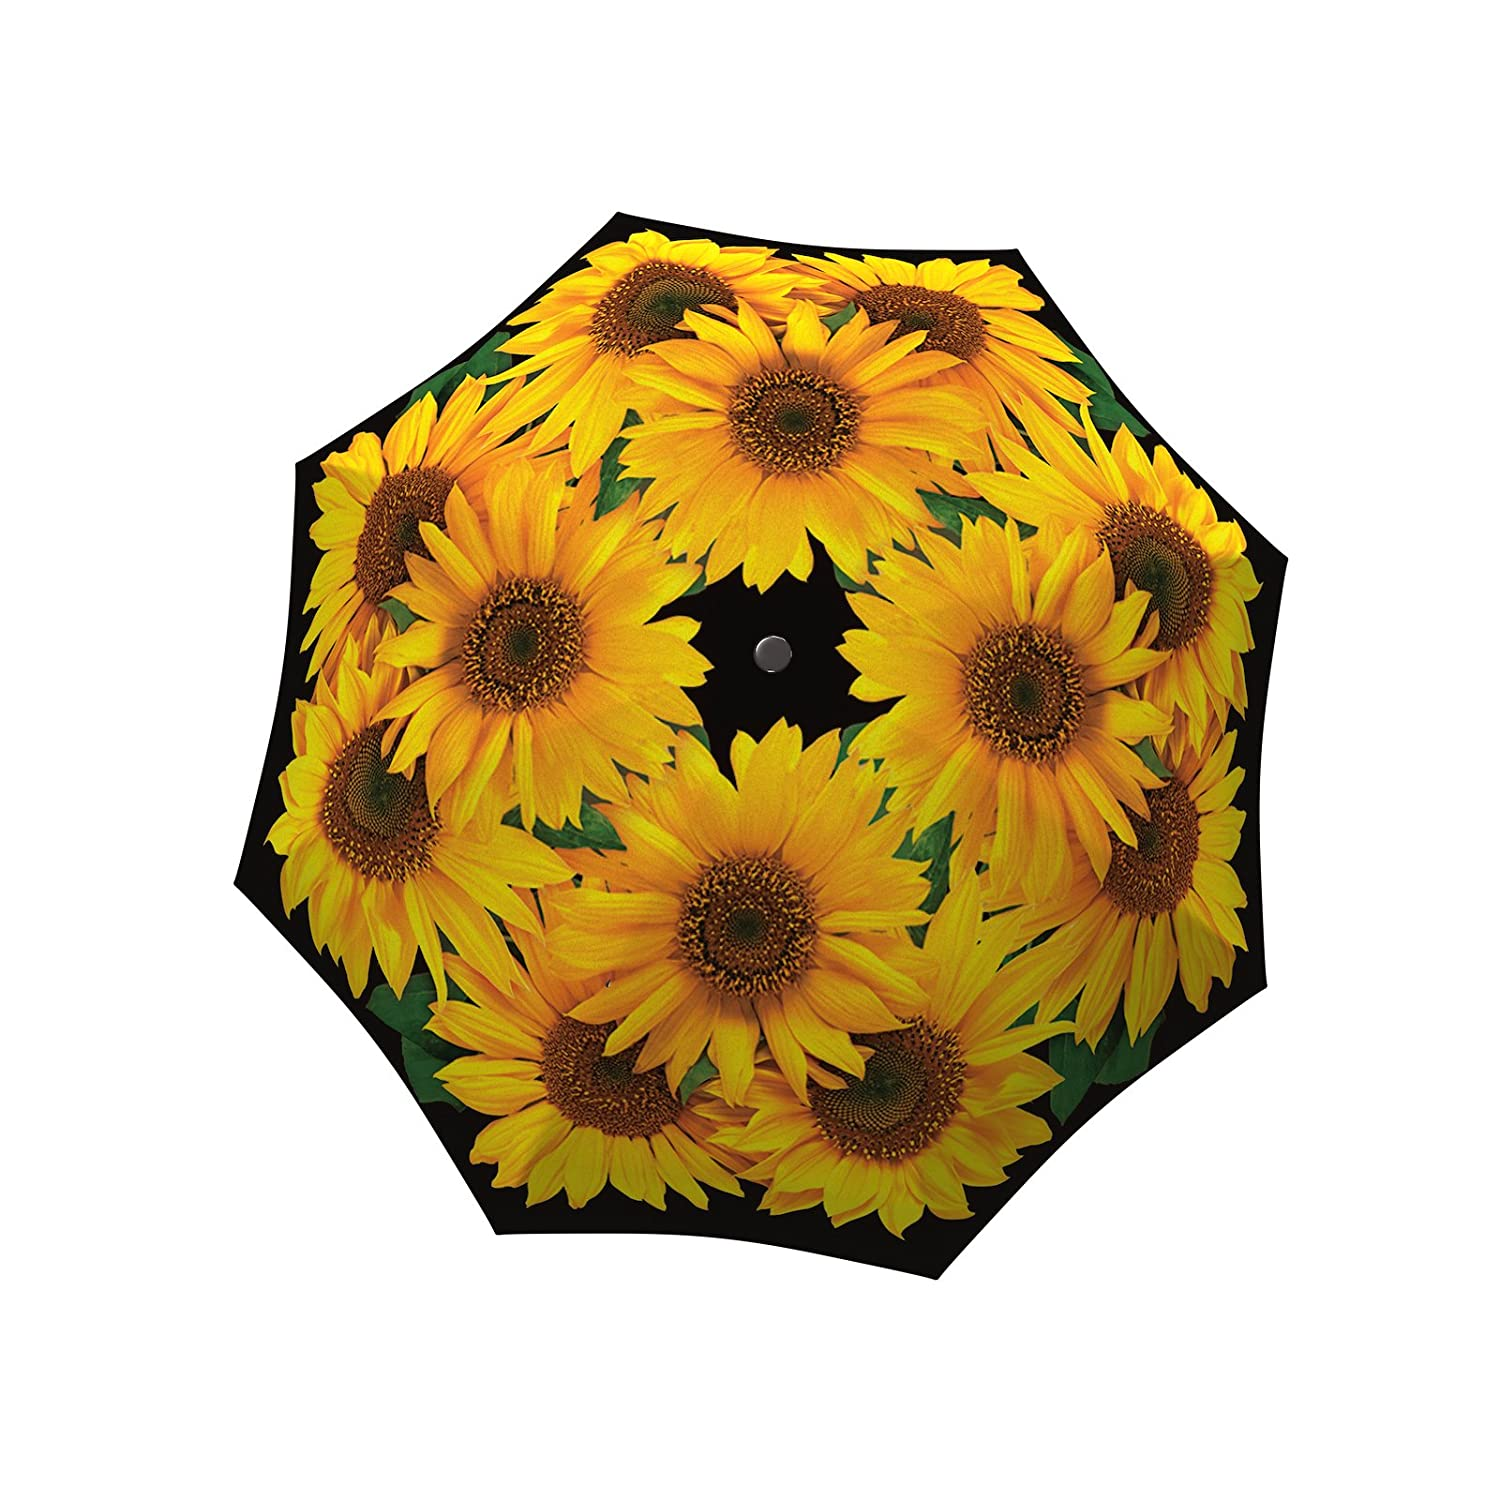 b24360e326f4 LA BELLA UMBRELLA Sunflower Designer Large Canopy Unique Colourful Art  Fashion Umbrella – Windproof Stick Straight